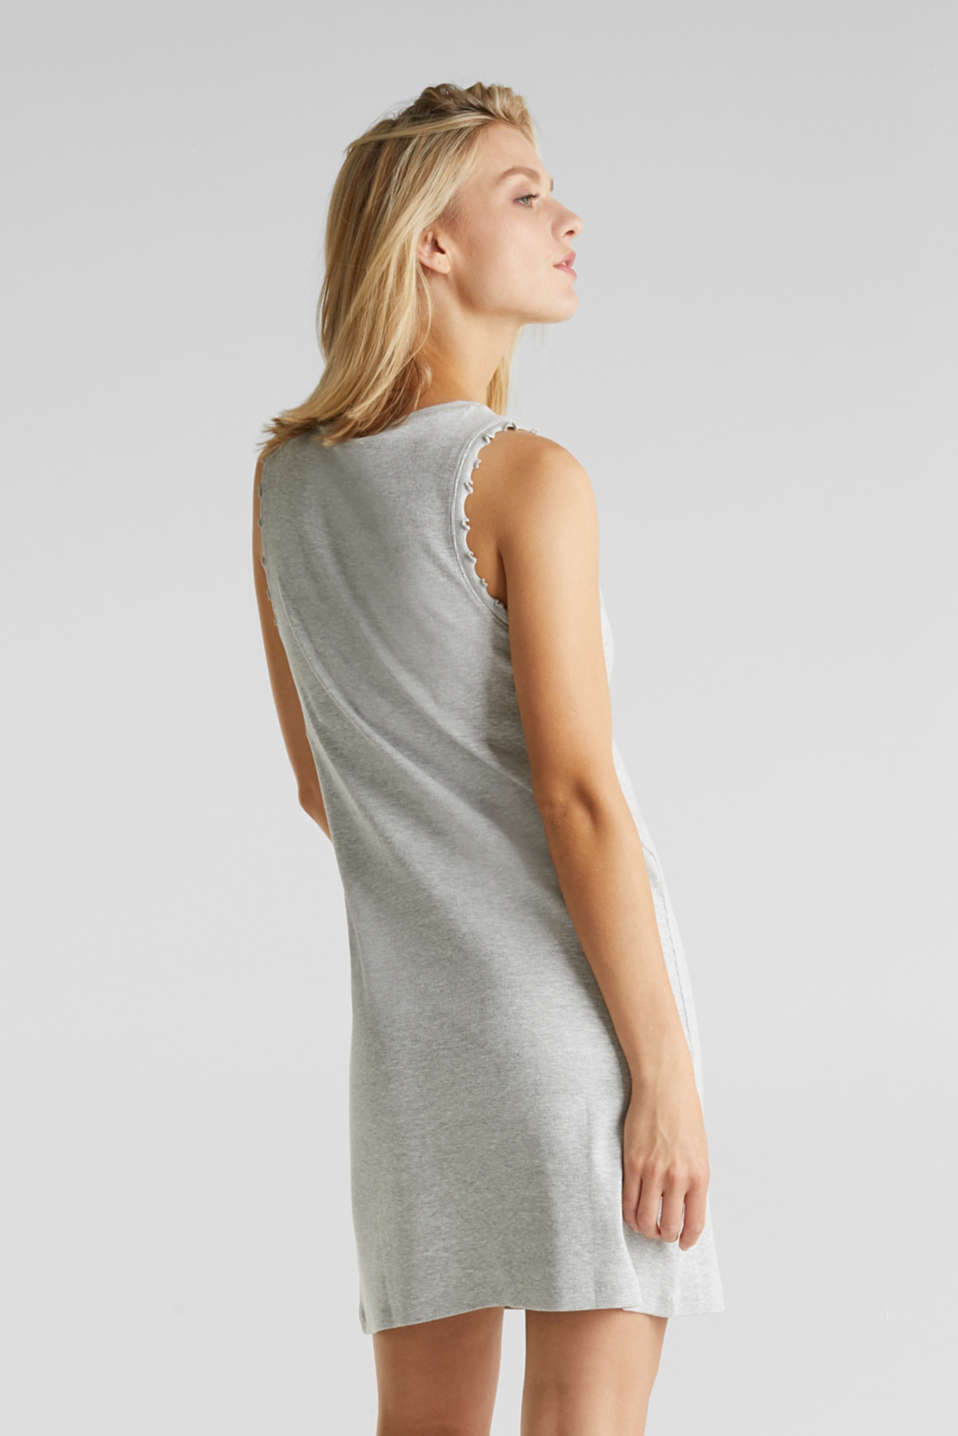 Ribbed jersey tank top dress, LIGHT GREY 5, detail image number 2